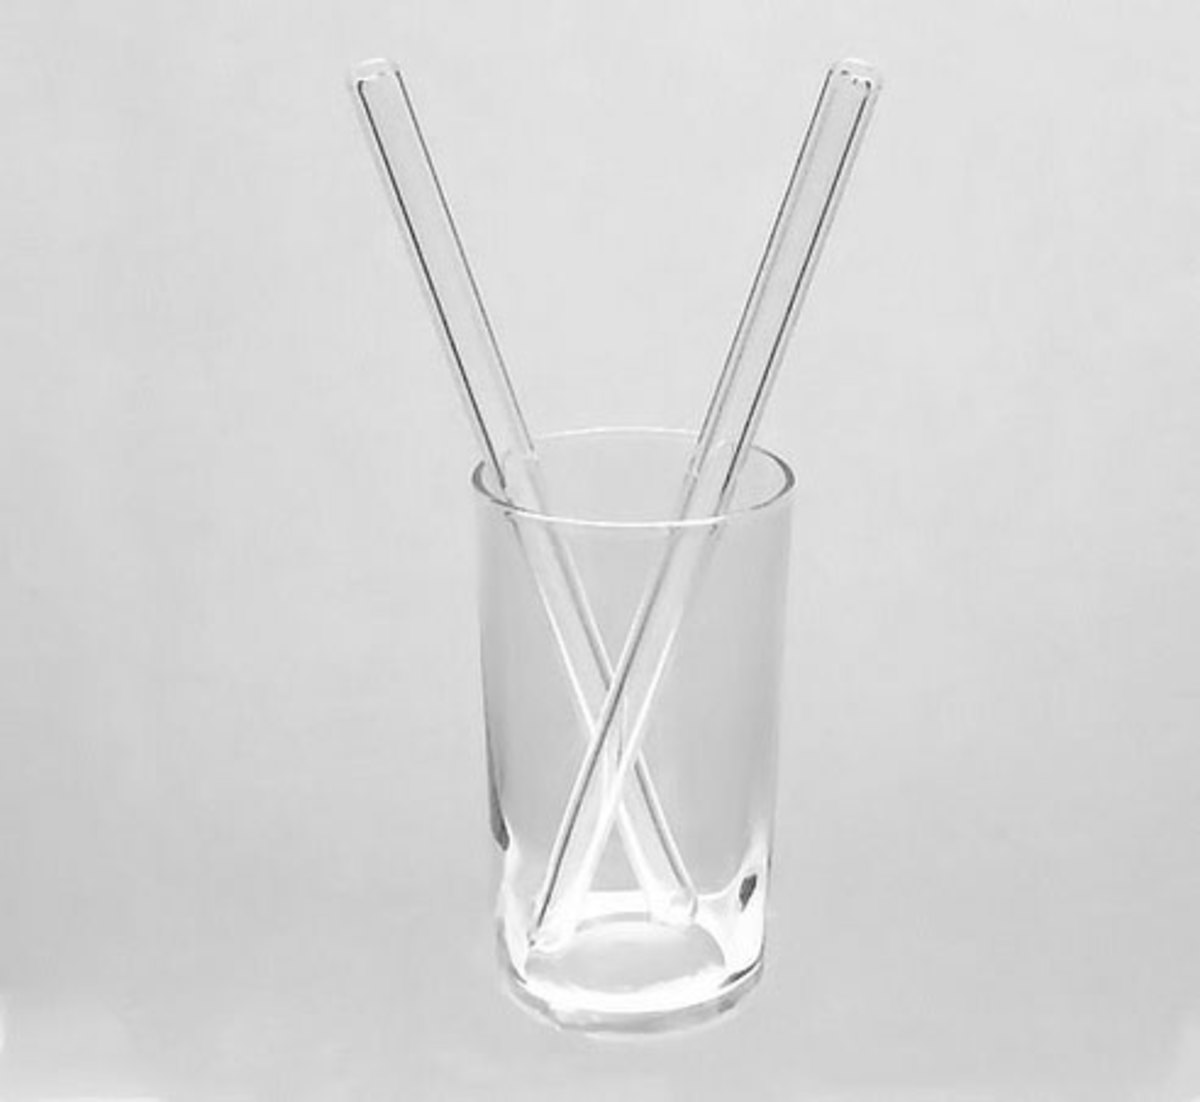 dharma-glass-straw1